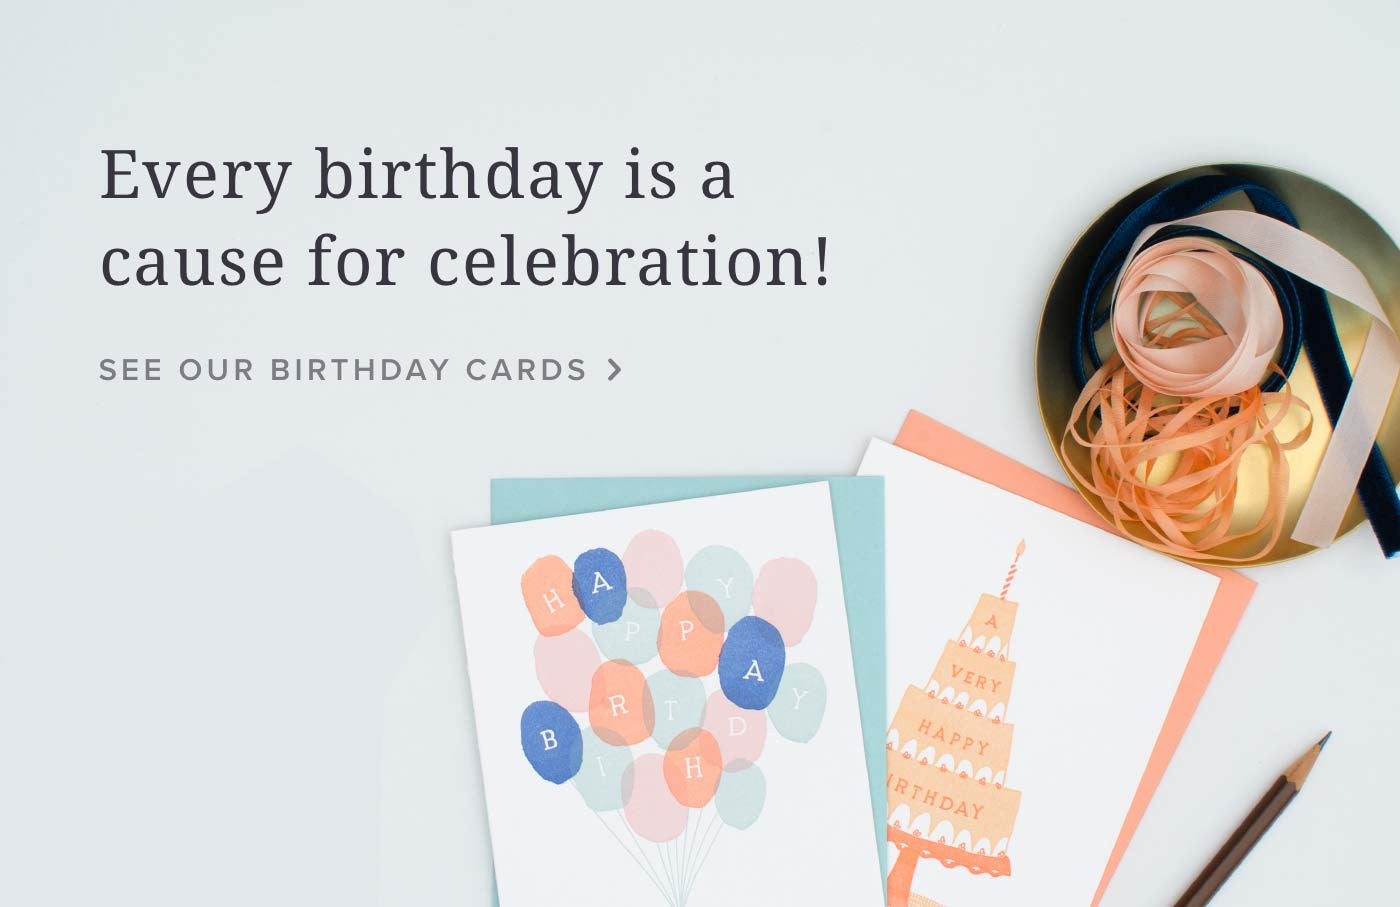 Every birthday is worth celebrating! See Our Birthday Cards.